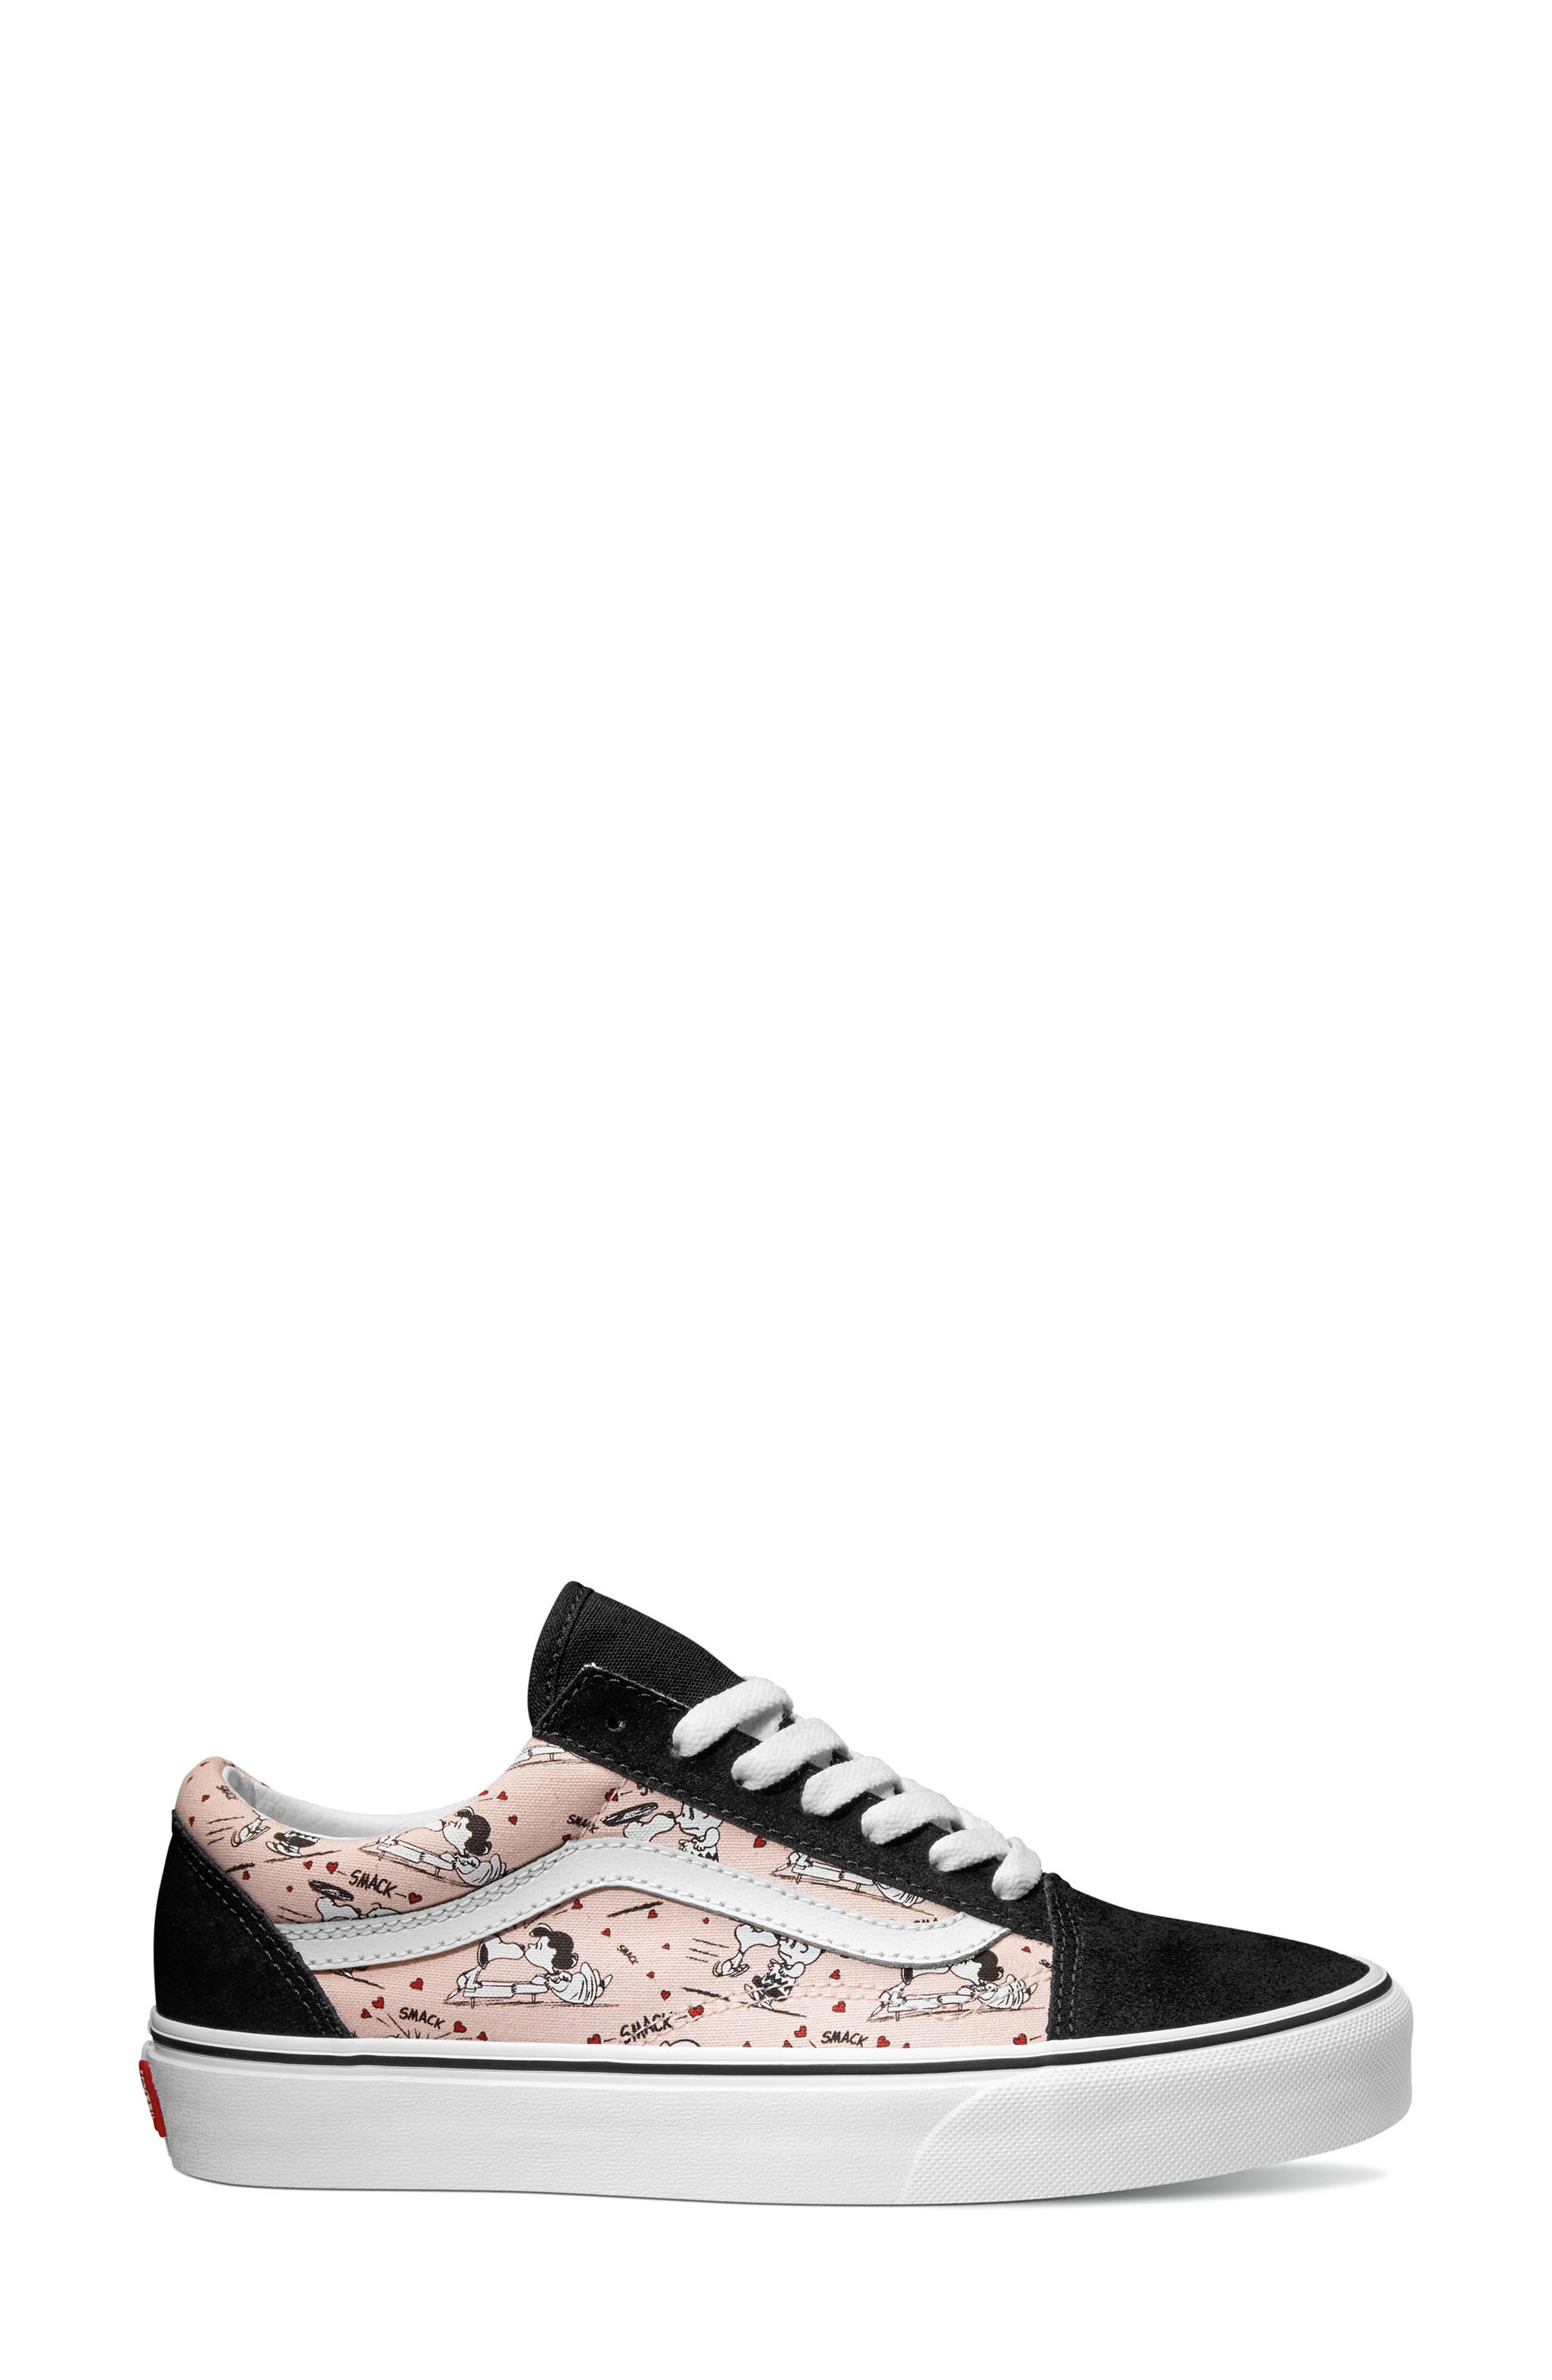 Vans x Peanuts Old Skool Snoopy Kisses Sneaker (Women)